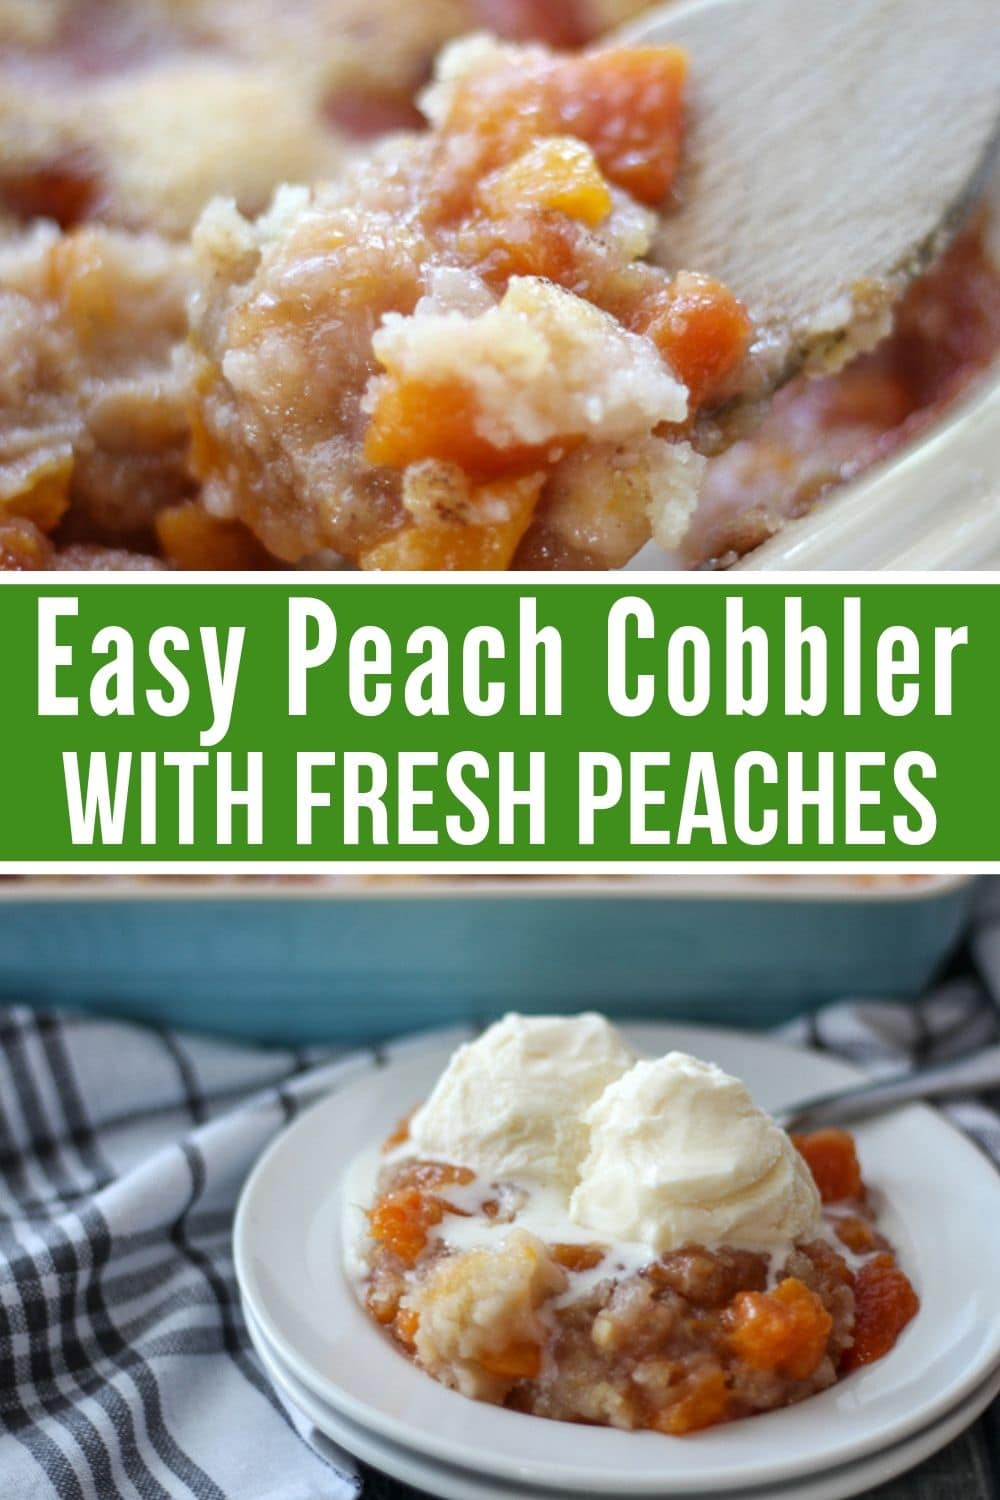 Collage of peach cobbler. The picture on the top has a wooden spoon in the cobbler, and the bottom picture has cobbler with ice cream on top.